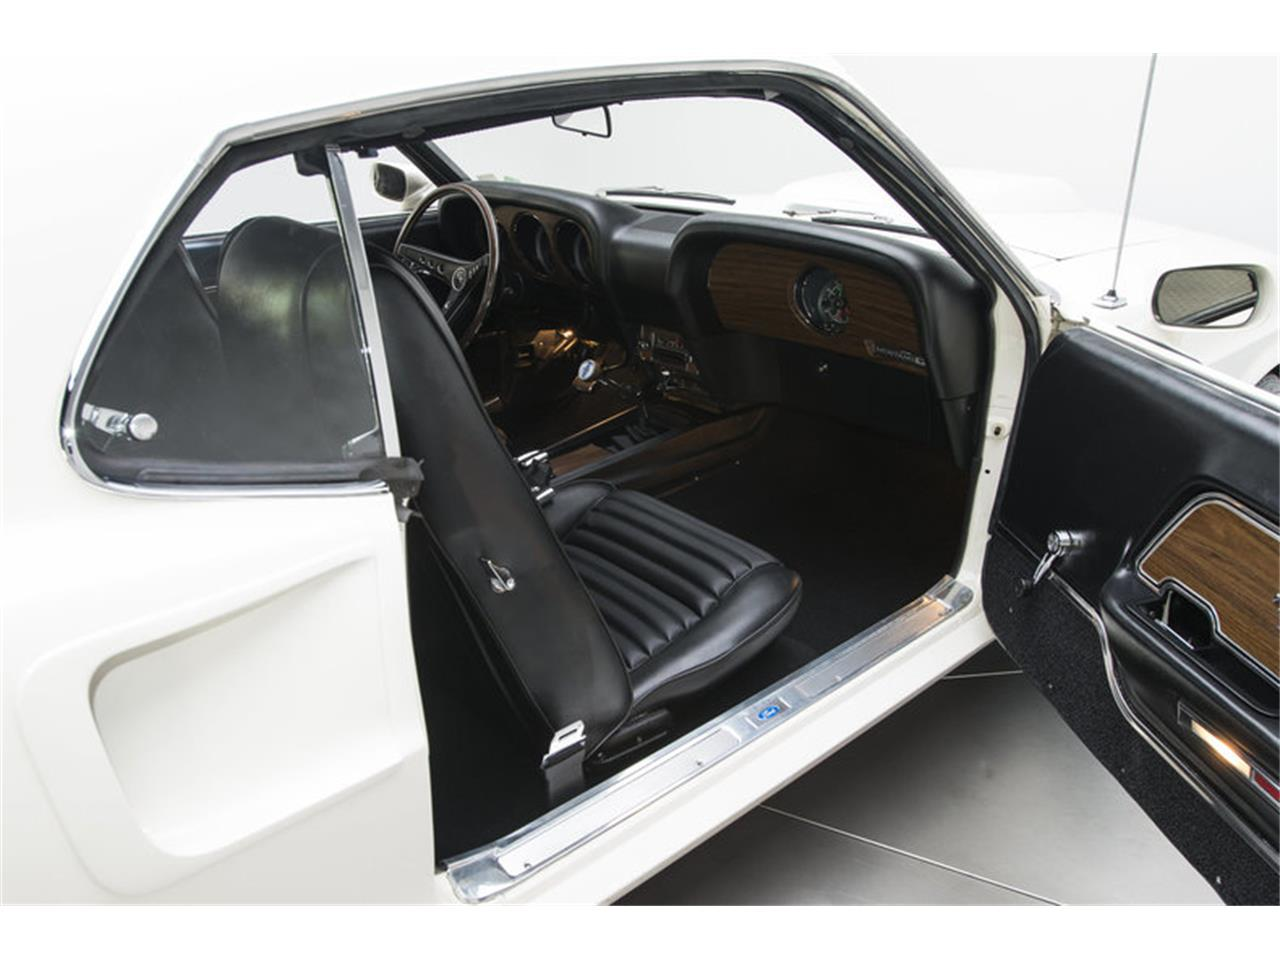 Large Picture of '69 Mustang located in North Carolina - $269,900.00 - L5MU